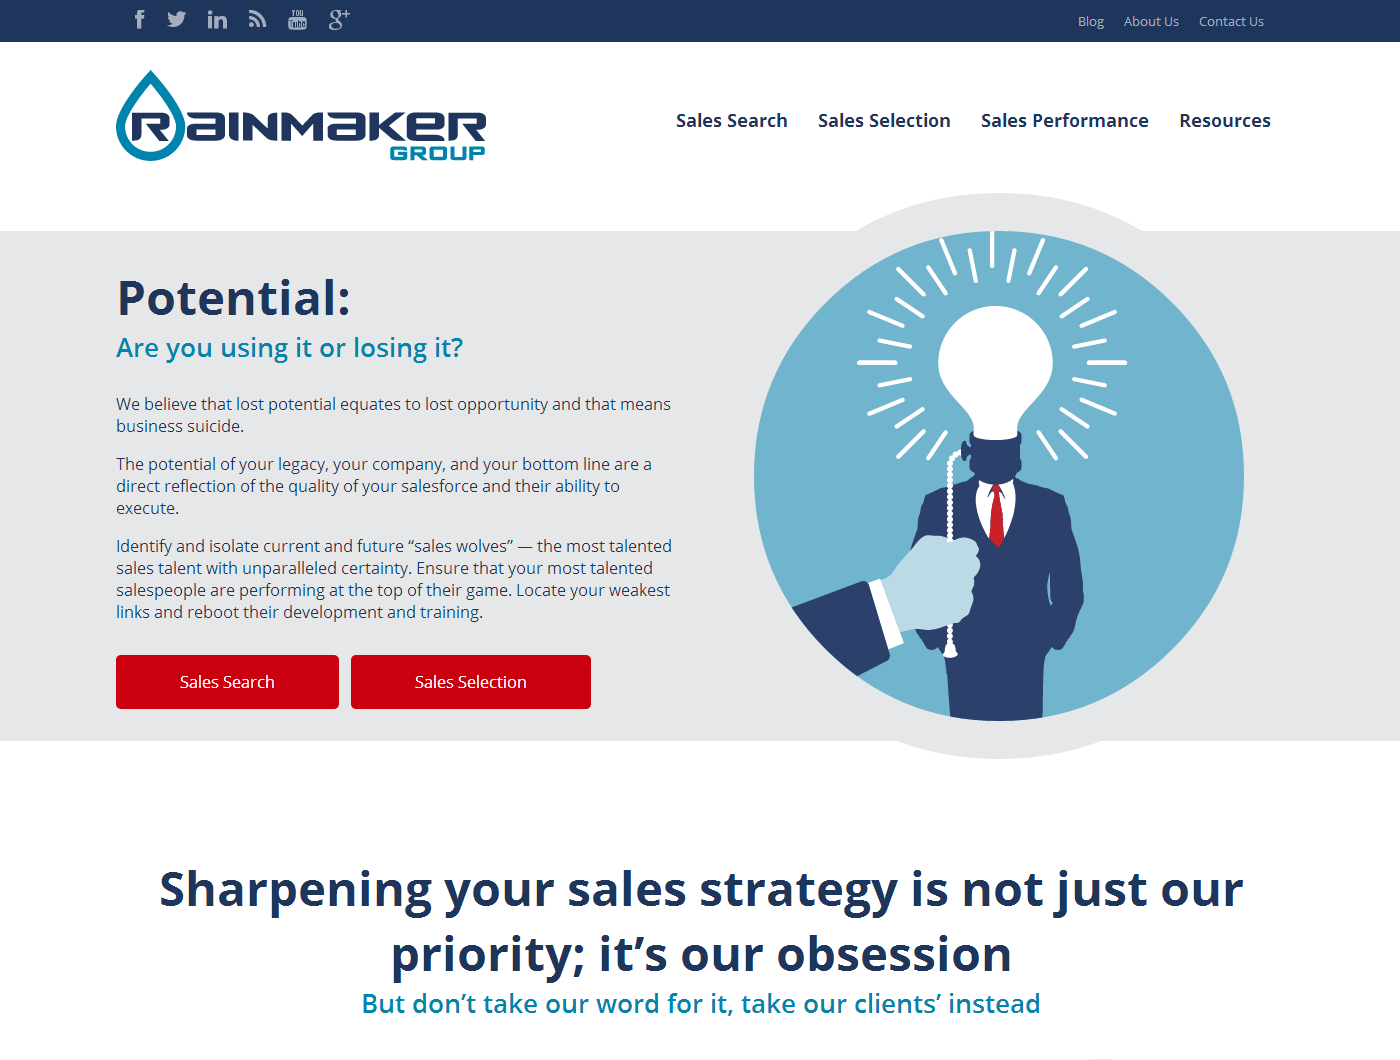 The Rainmaker Group website